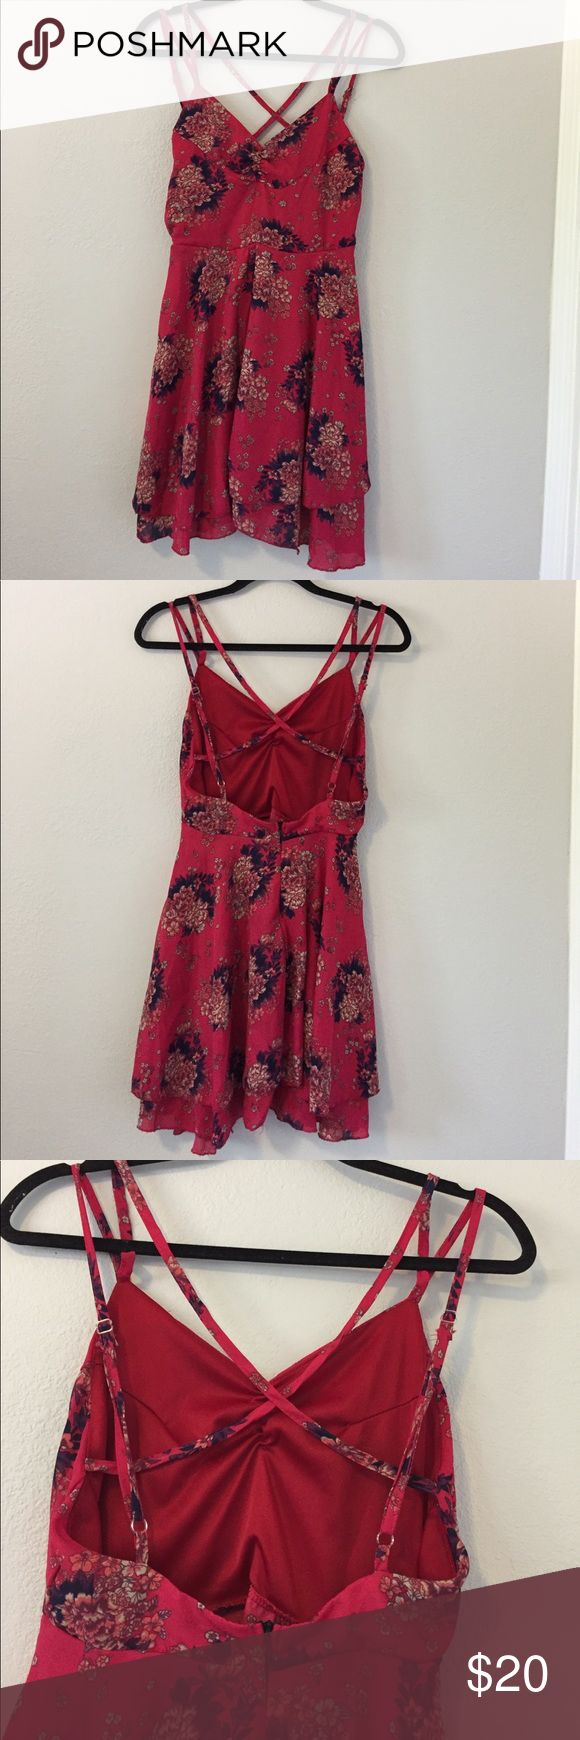 "‼️SALE‼️ Beautiful and Whimsical Pink Floral Print Dress. It has scrunching on the bust, and cris cross adjustable spaghetti straps. It has an open back and he Zipper begins just above the lower back. It is Fitted up too, and flairs out in a flowy layered skirt. I wear a 6, & it was just a bit too snug & short for my comfort, I would compare it more to a 4. Approx measurements laying flat: waist side to side: 13"", pit to waist: 4"", waist to hem: 18"" & 16"" as it has a layered effect to it…"